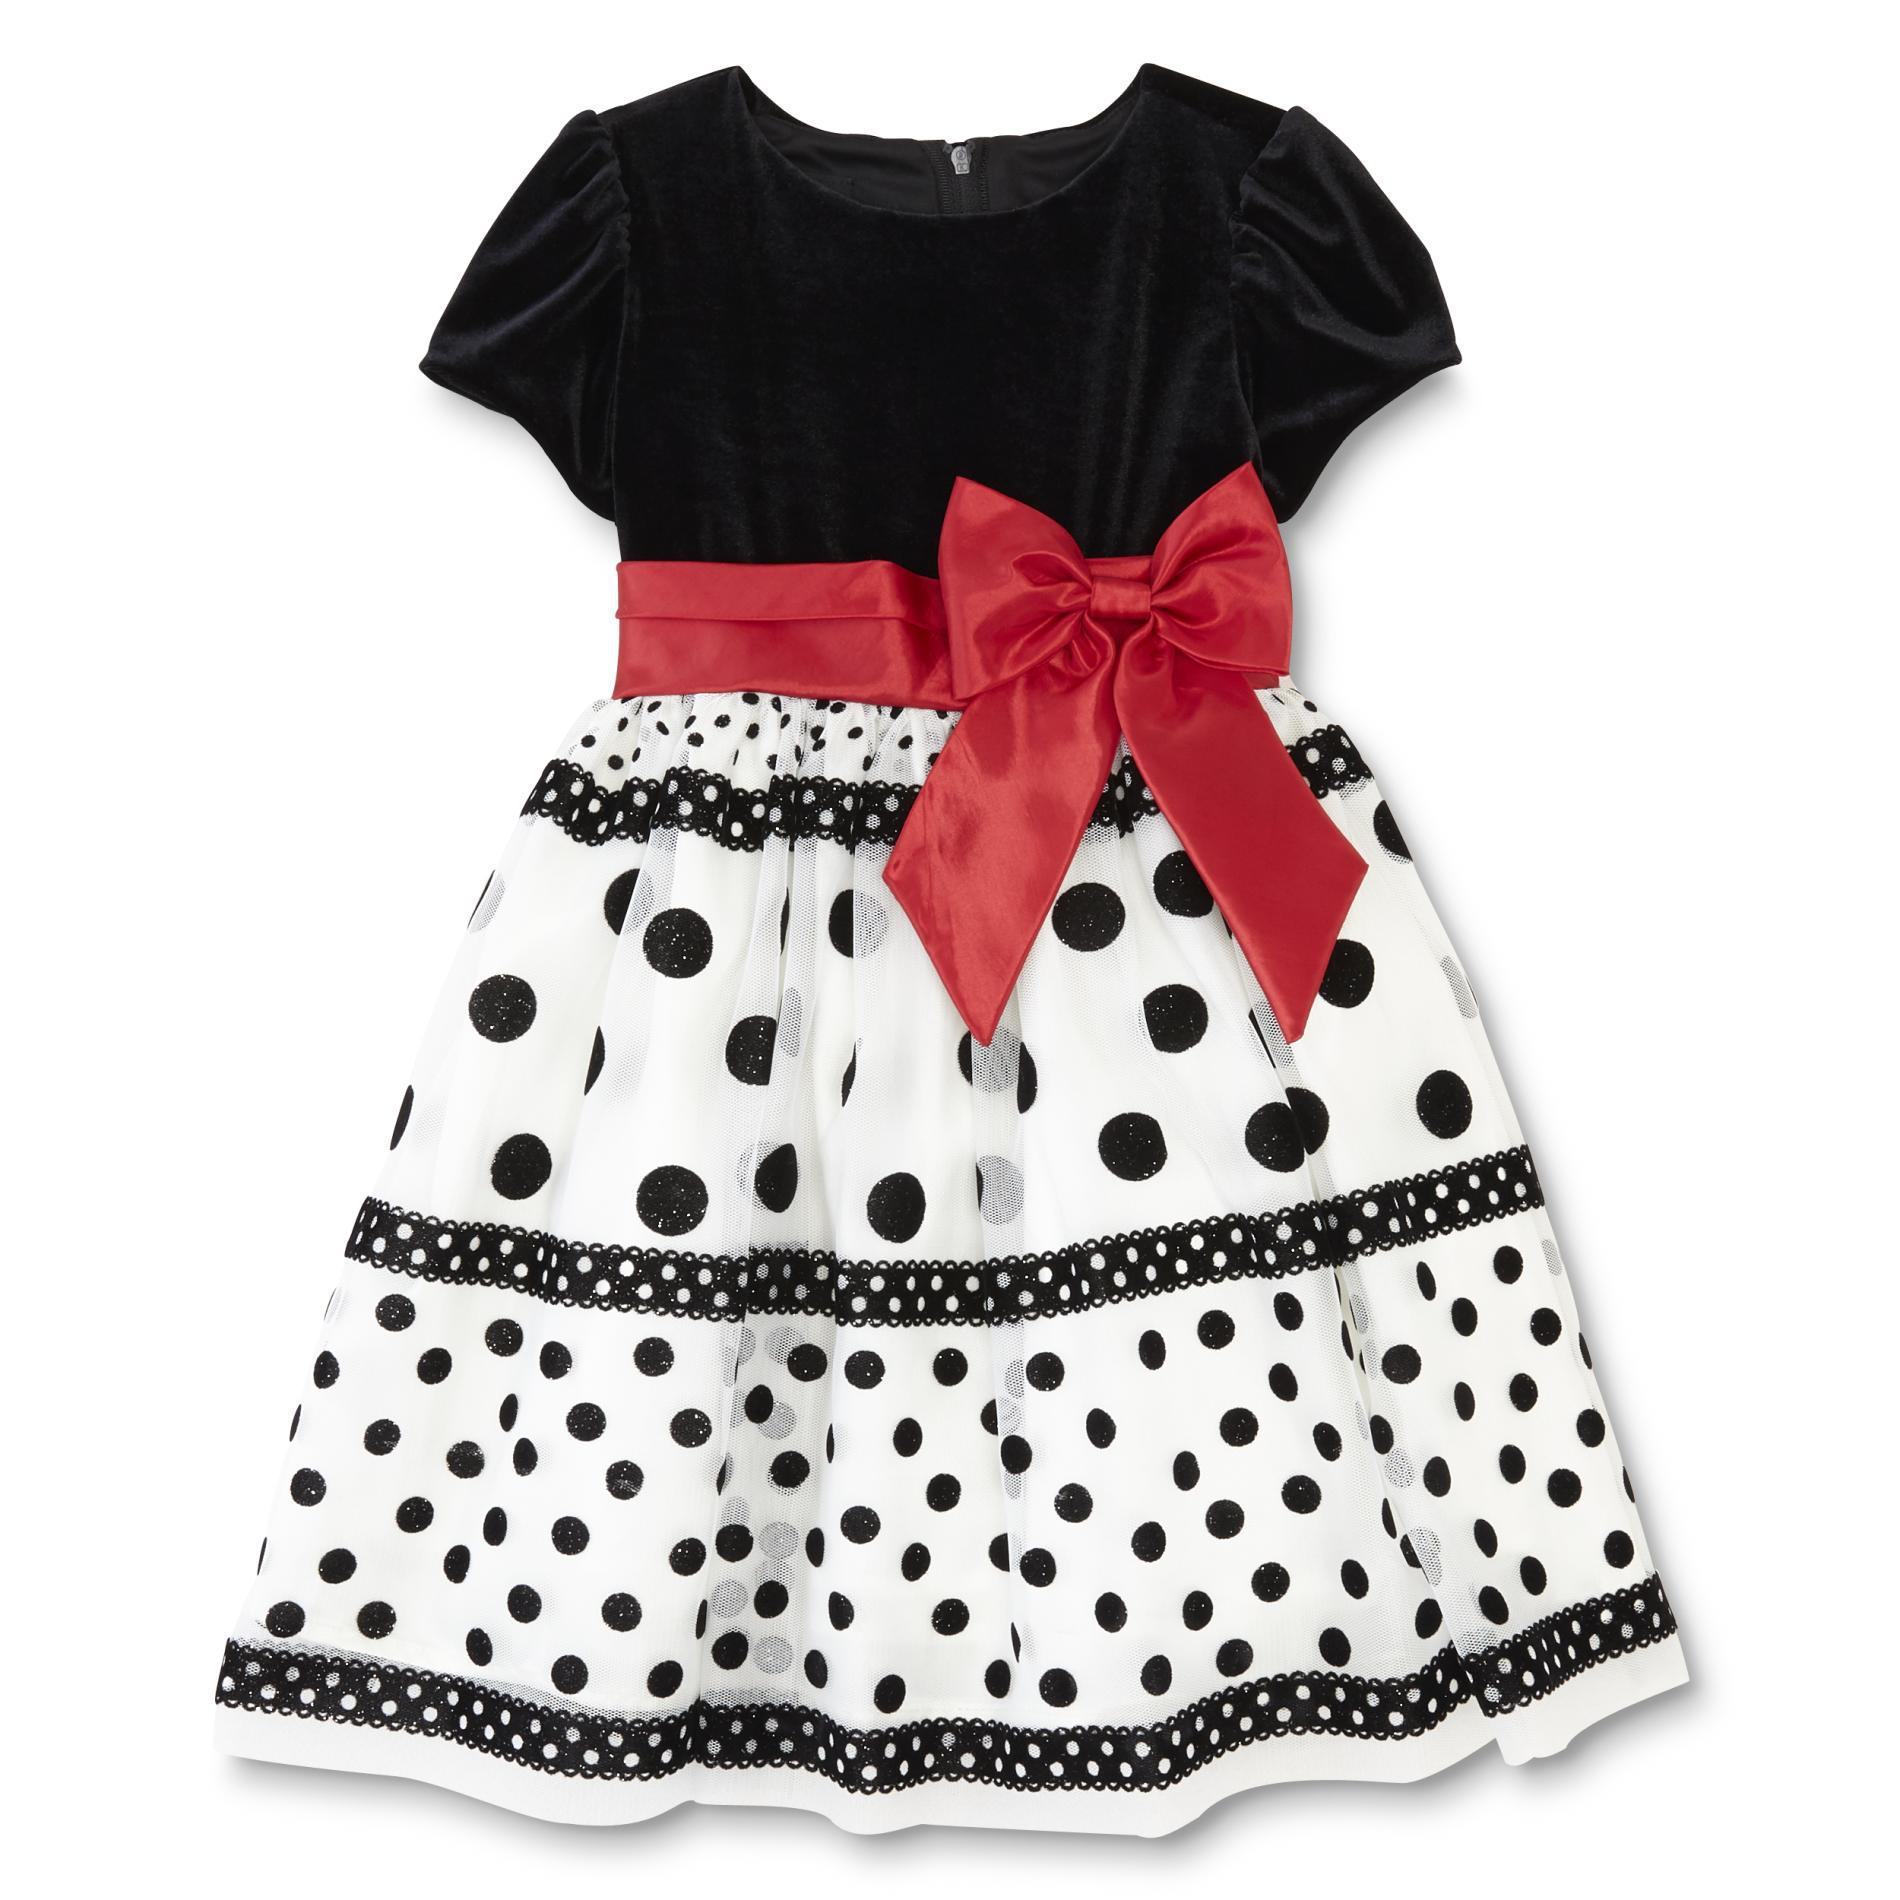 Holiday Editions Infant & Toddler Girls' Party Dress - Dots